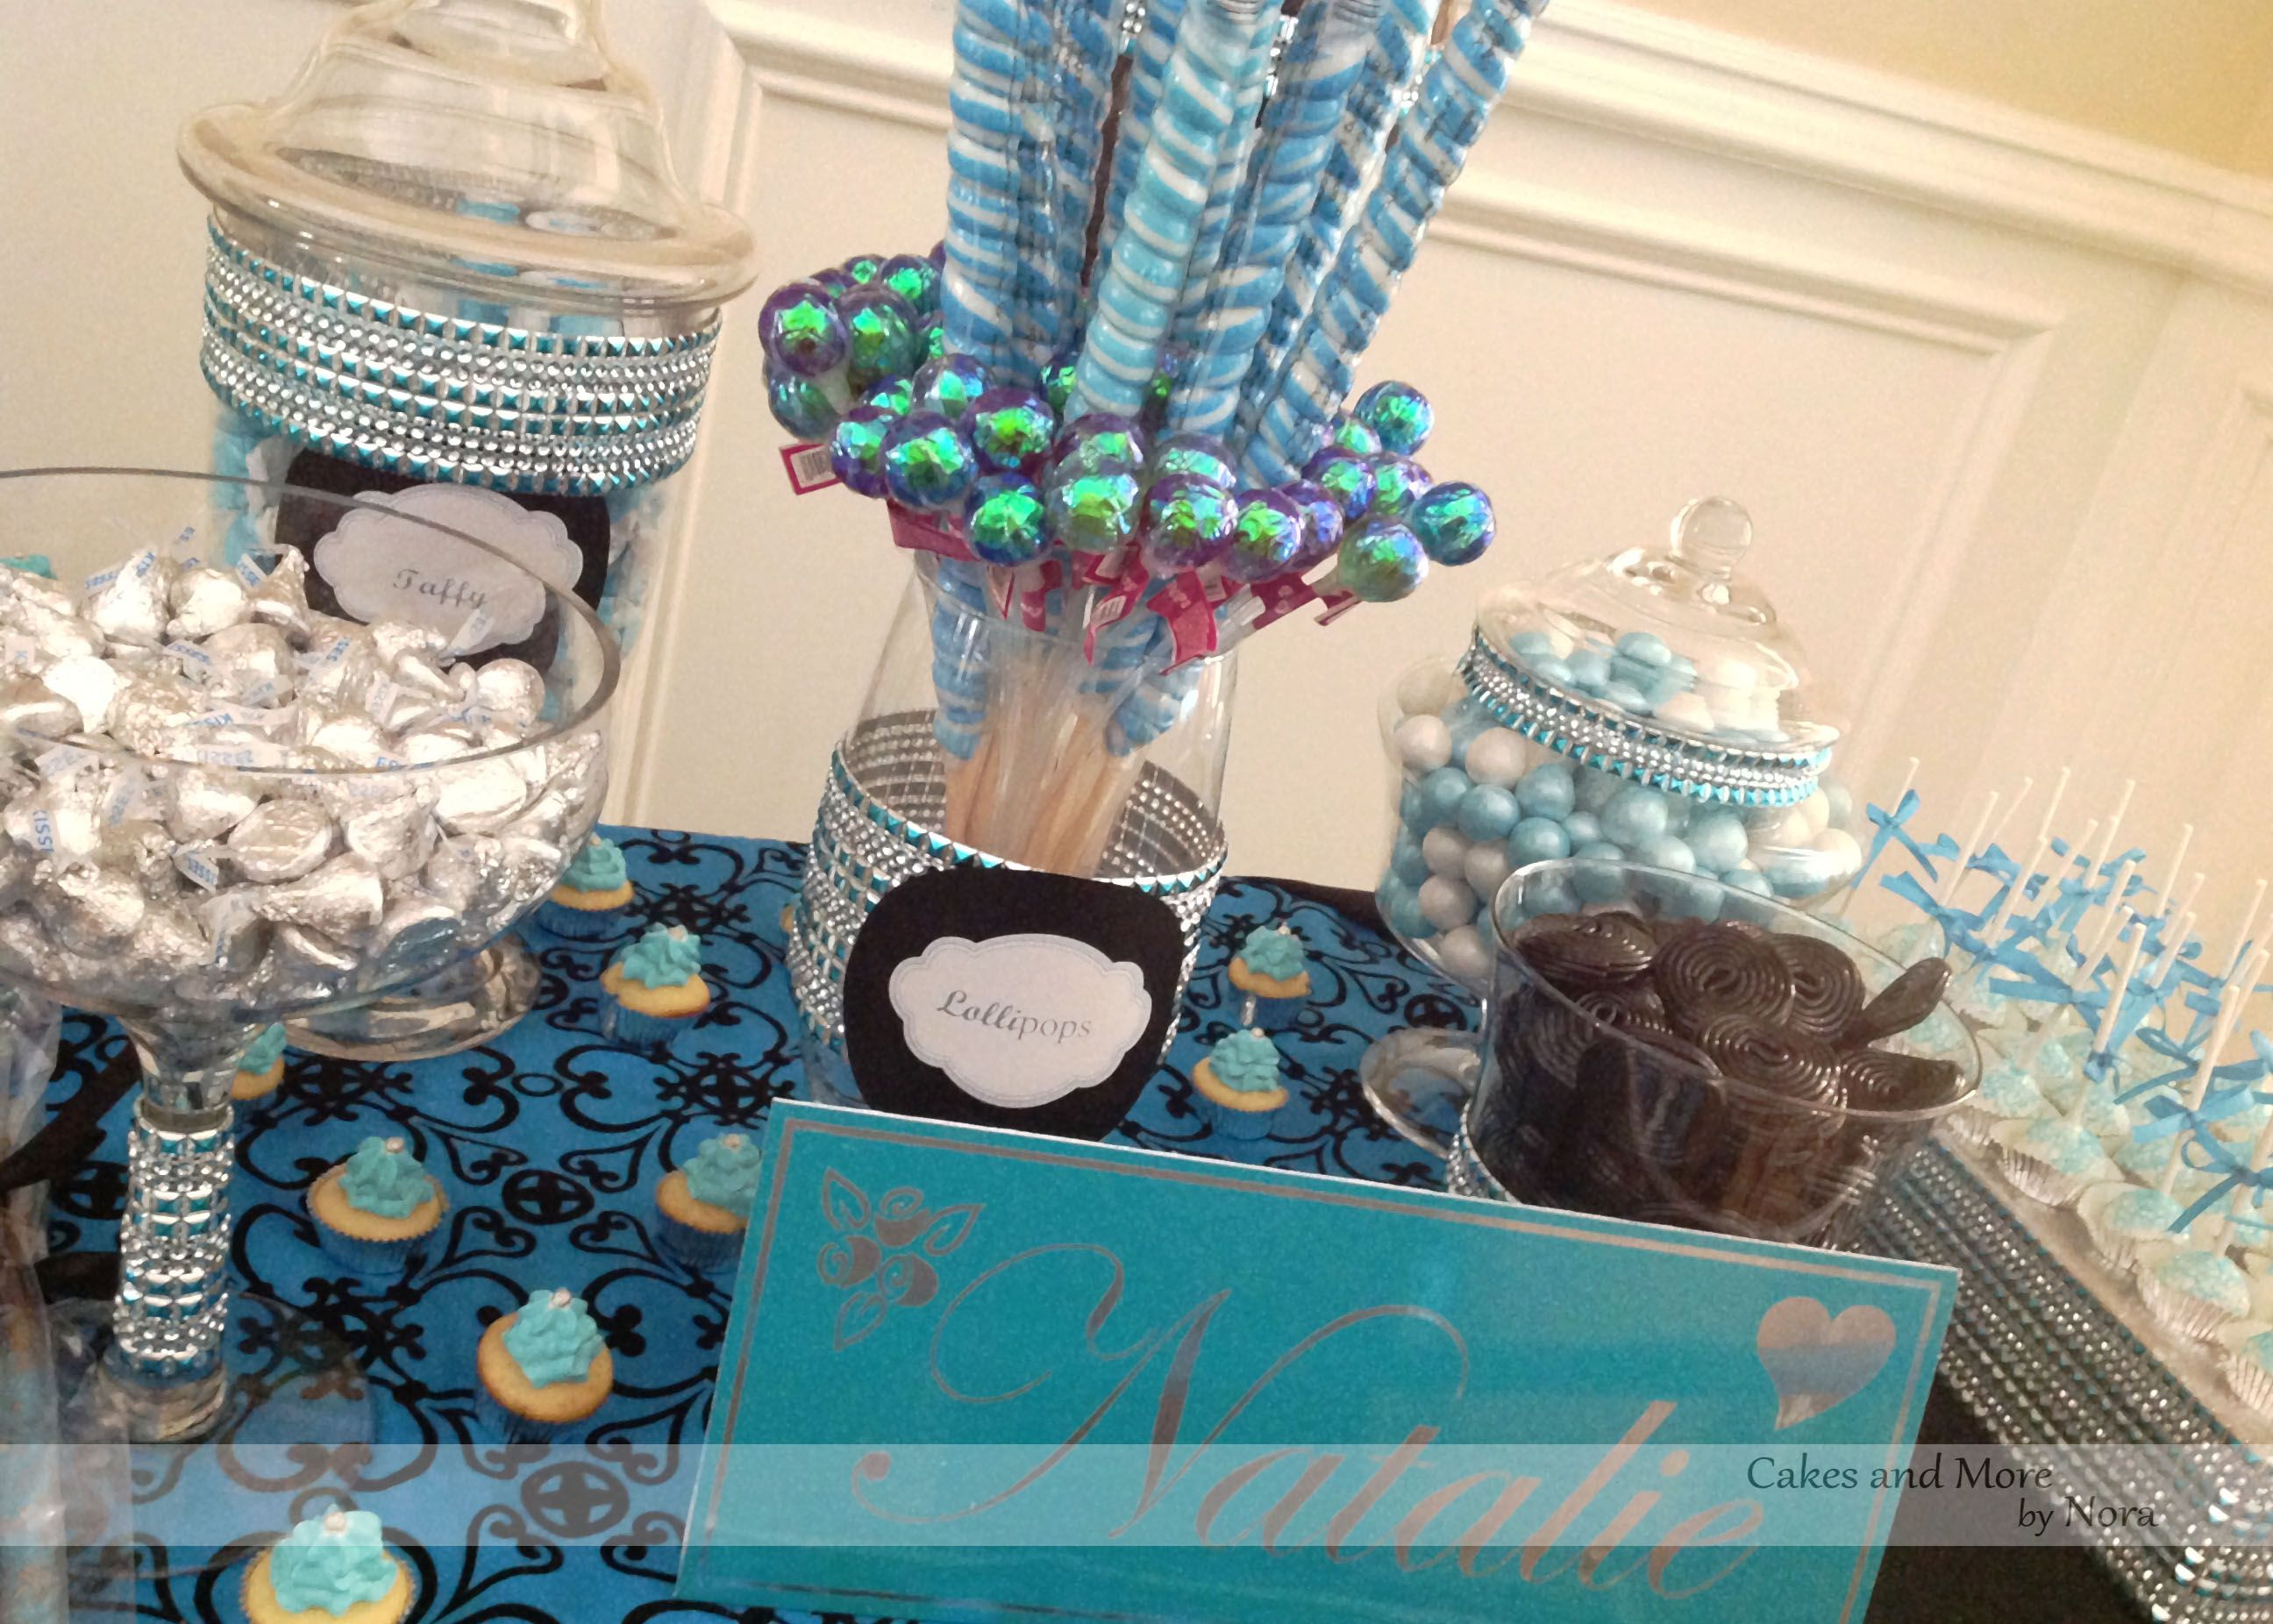 Sweet 16 Table Decoration Ideas sweet 16 table decoration ideas sweet 16 decorations ideas my wedding 16 years ago sweet 16 pinterest sweet 16 decorations and sweet 16 Sweet 16 Masquerade Party Decorations Masquerade Sweet 16 Party Decorations Masquerade Sweet 16